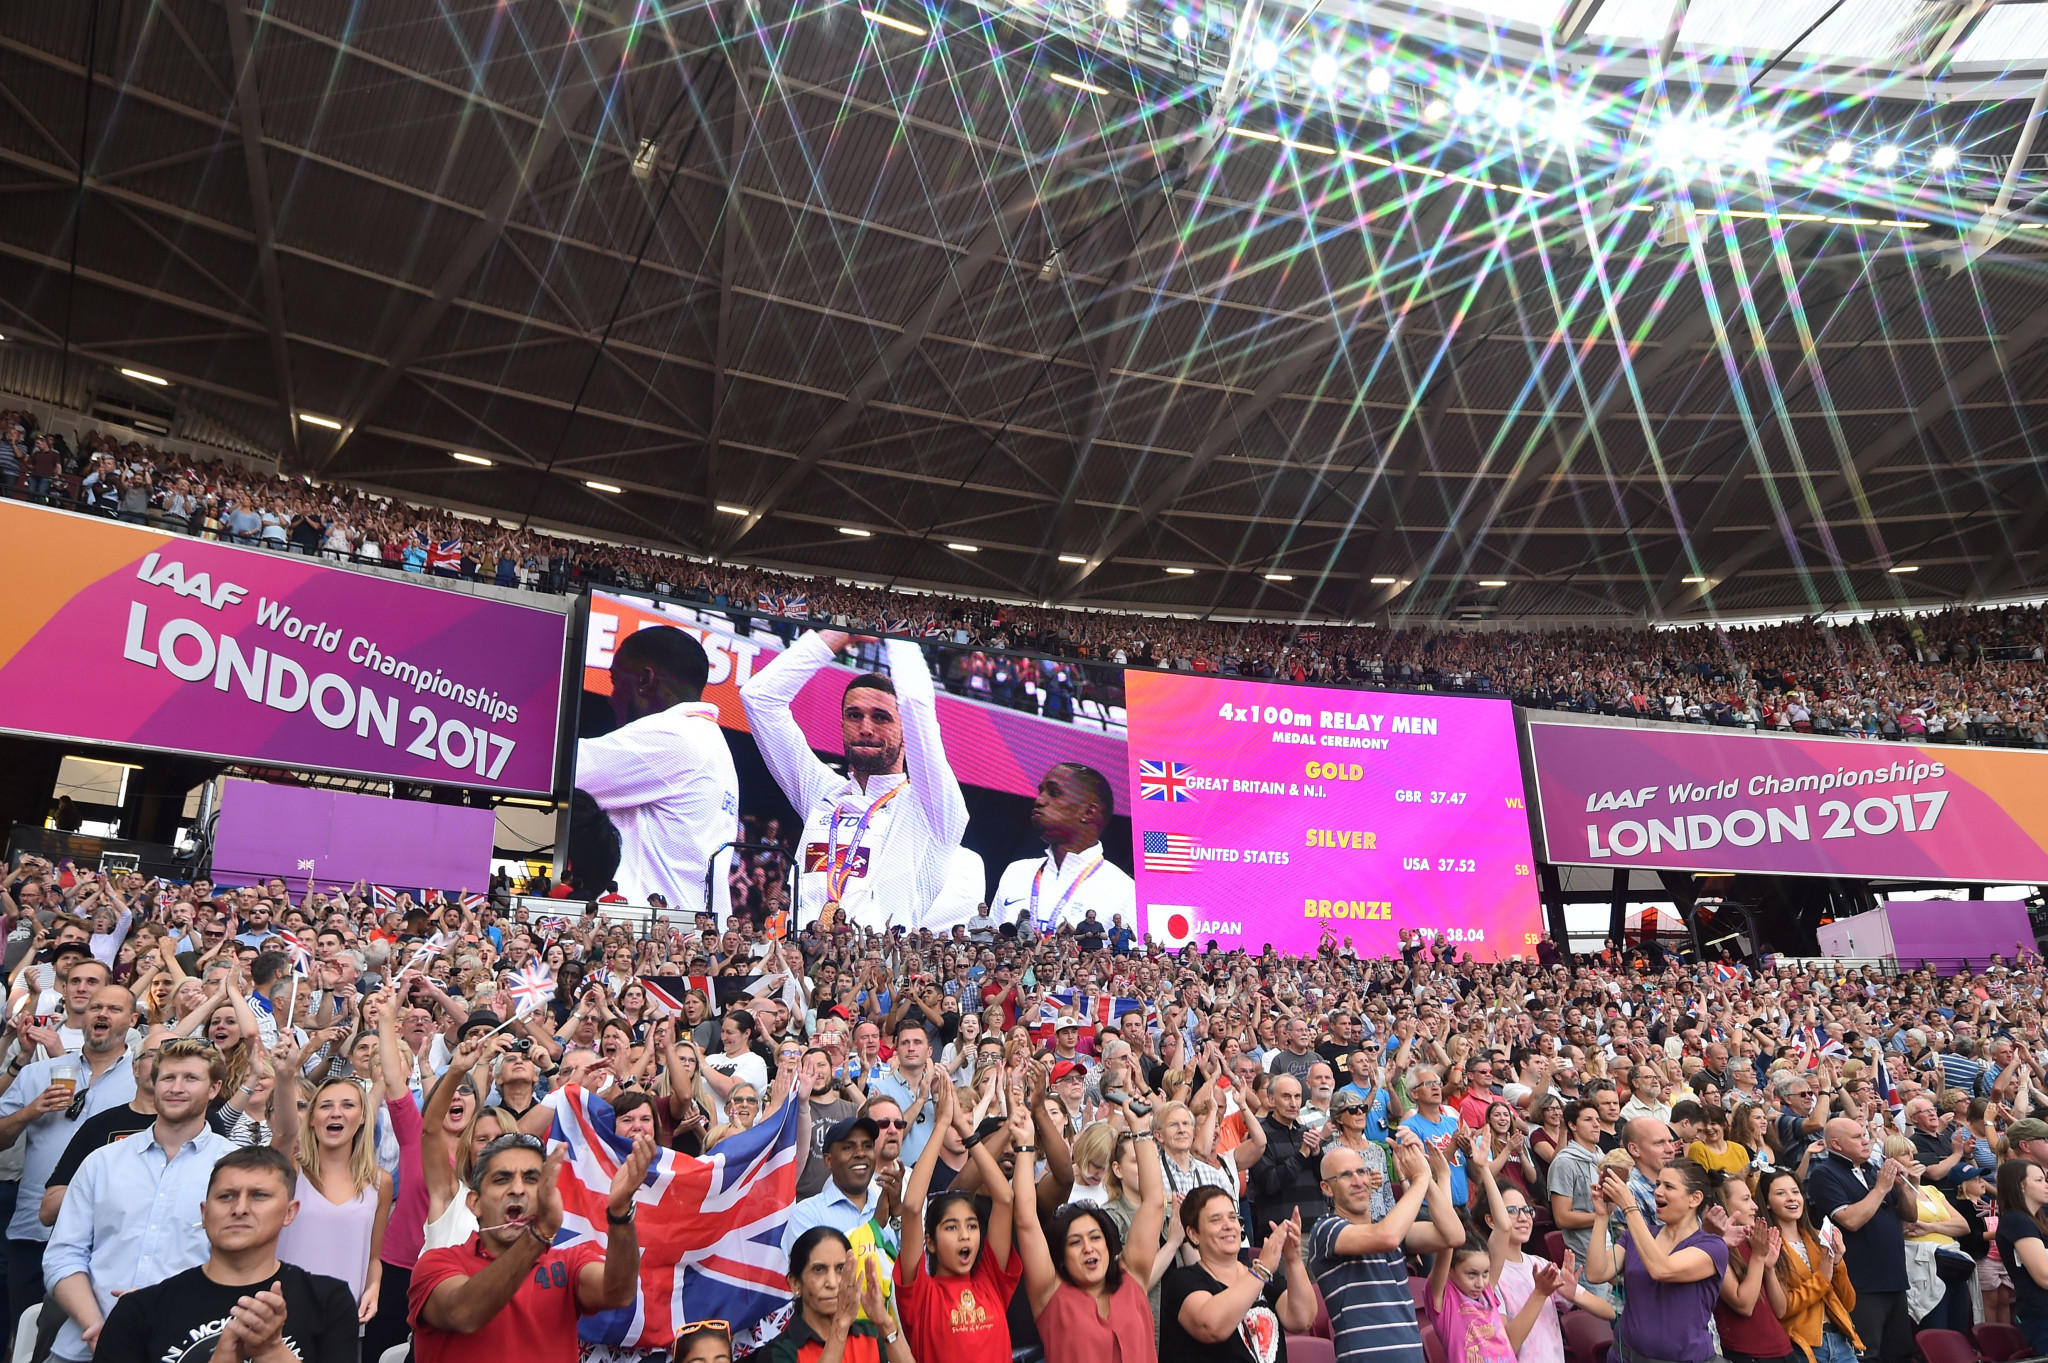 UK Sport claim £134 million generated from hosting events in legacy venues since London 2012